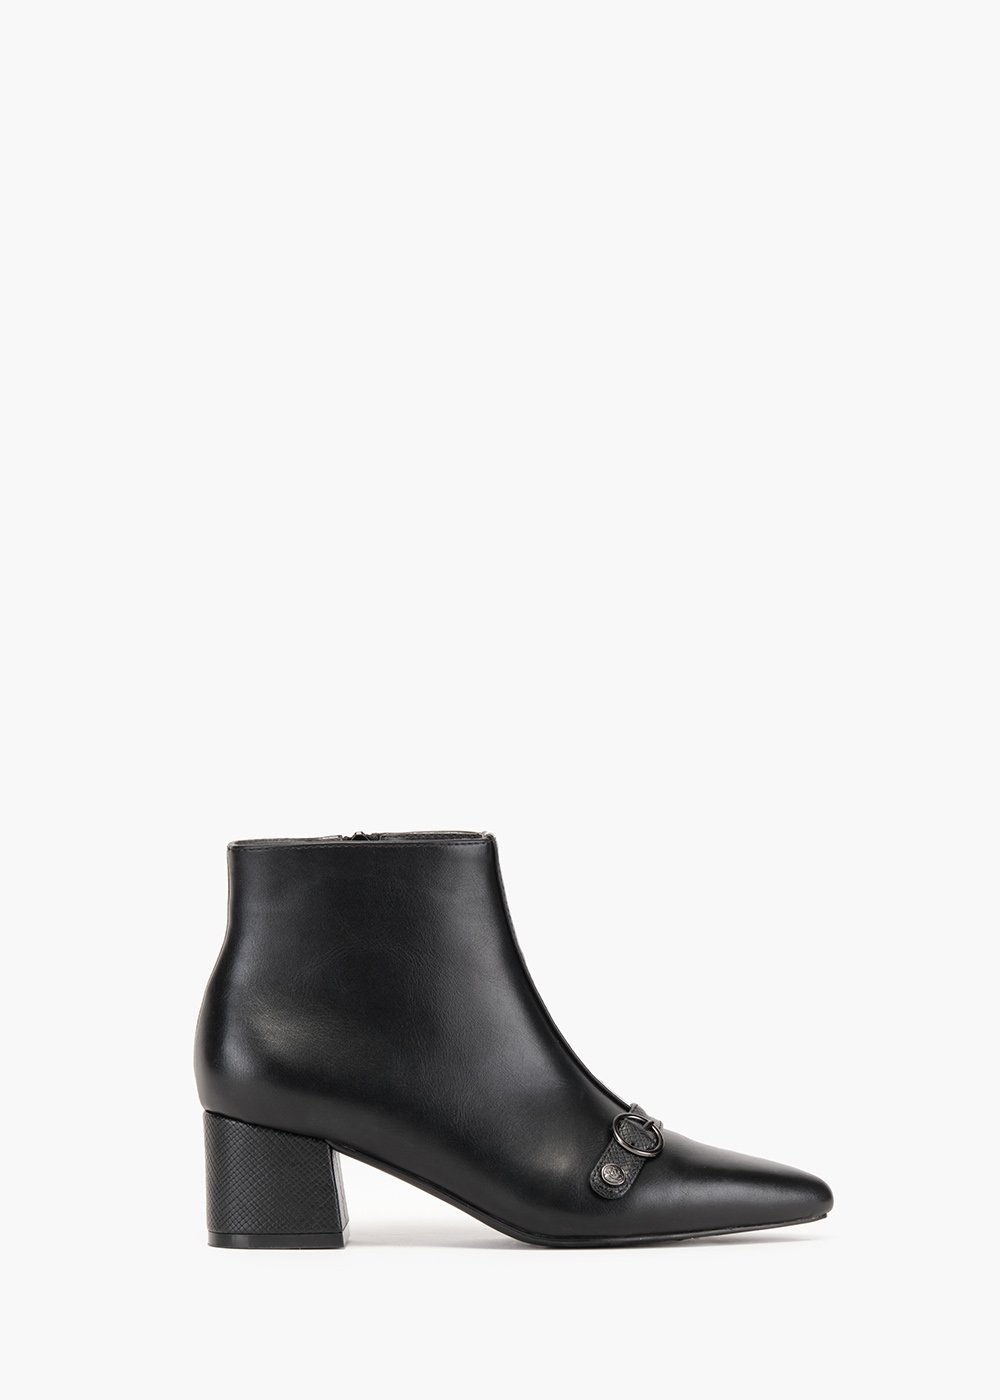 Boots Shear in faux leather with toe - Black - Woman